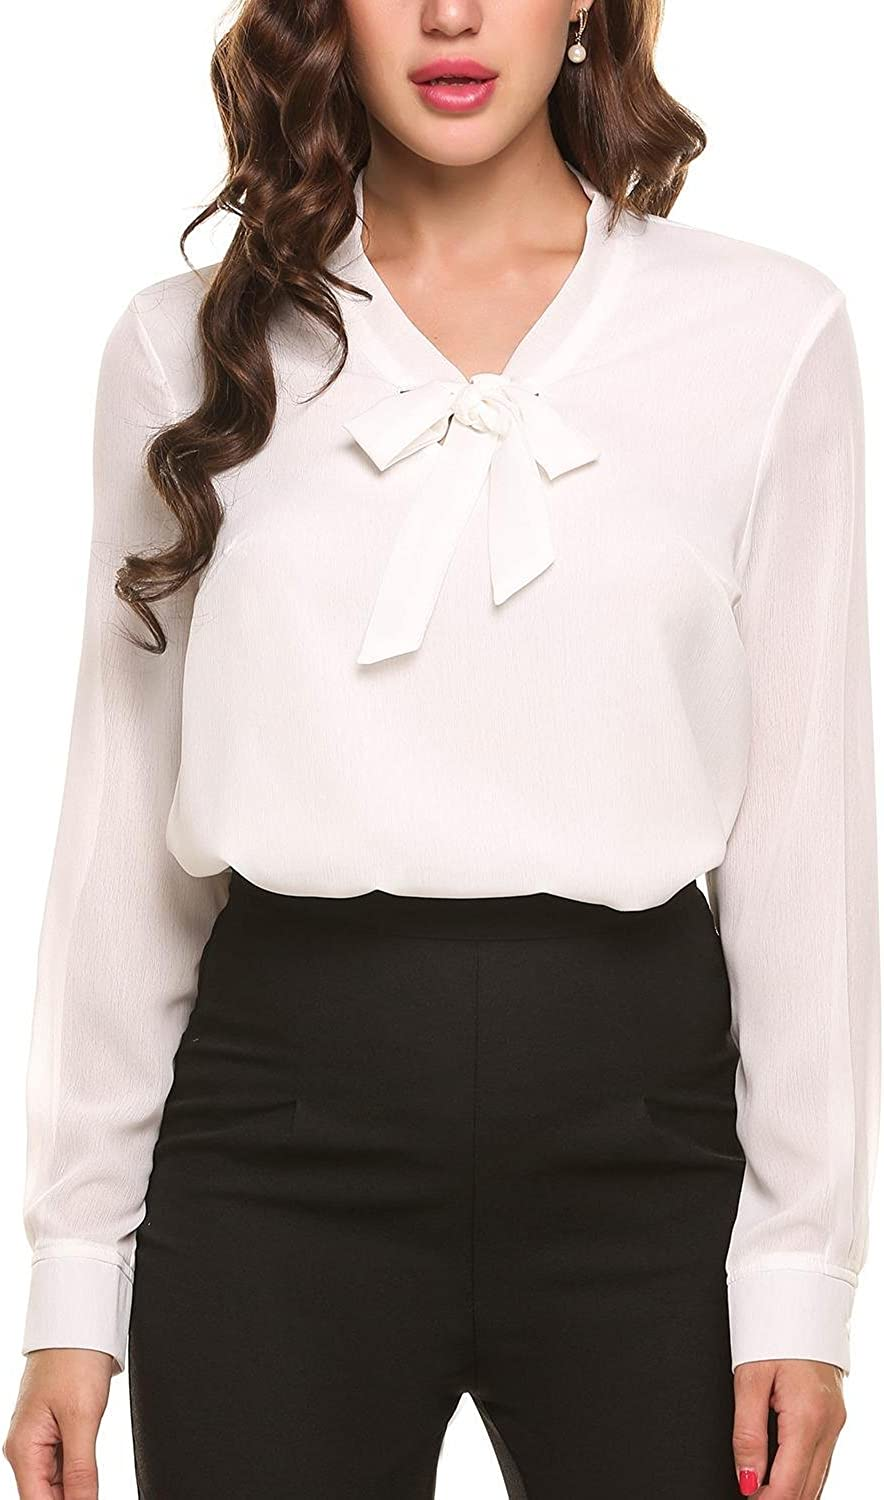 ACEVOG Womens Bow Tie Neck Long/Short Sleeve Casual Office Work Chiffon Blouse Shirts Tops